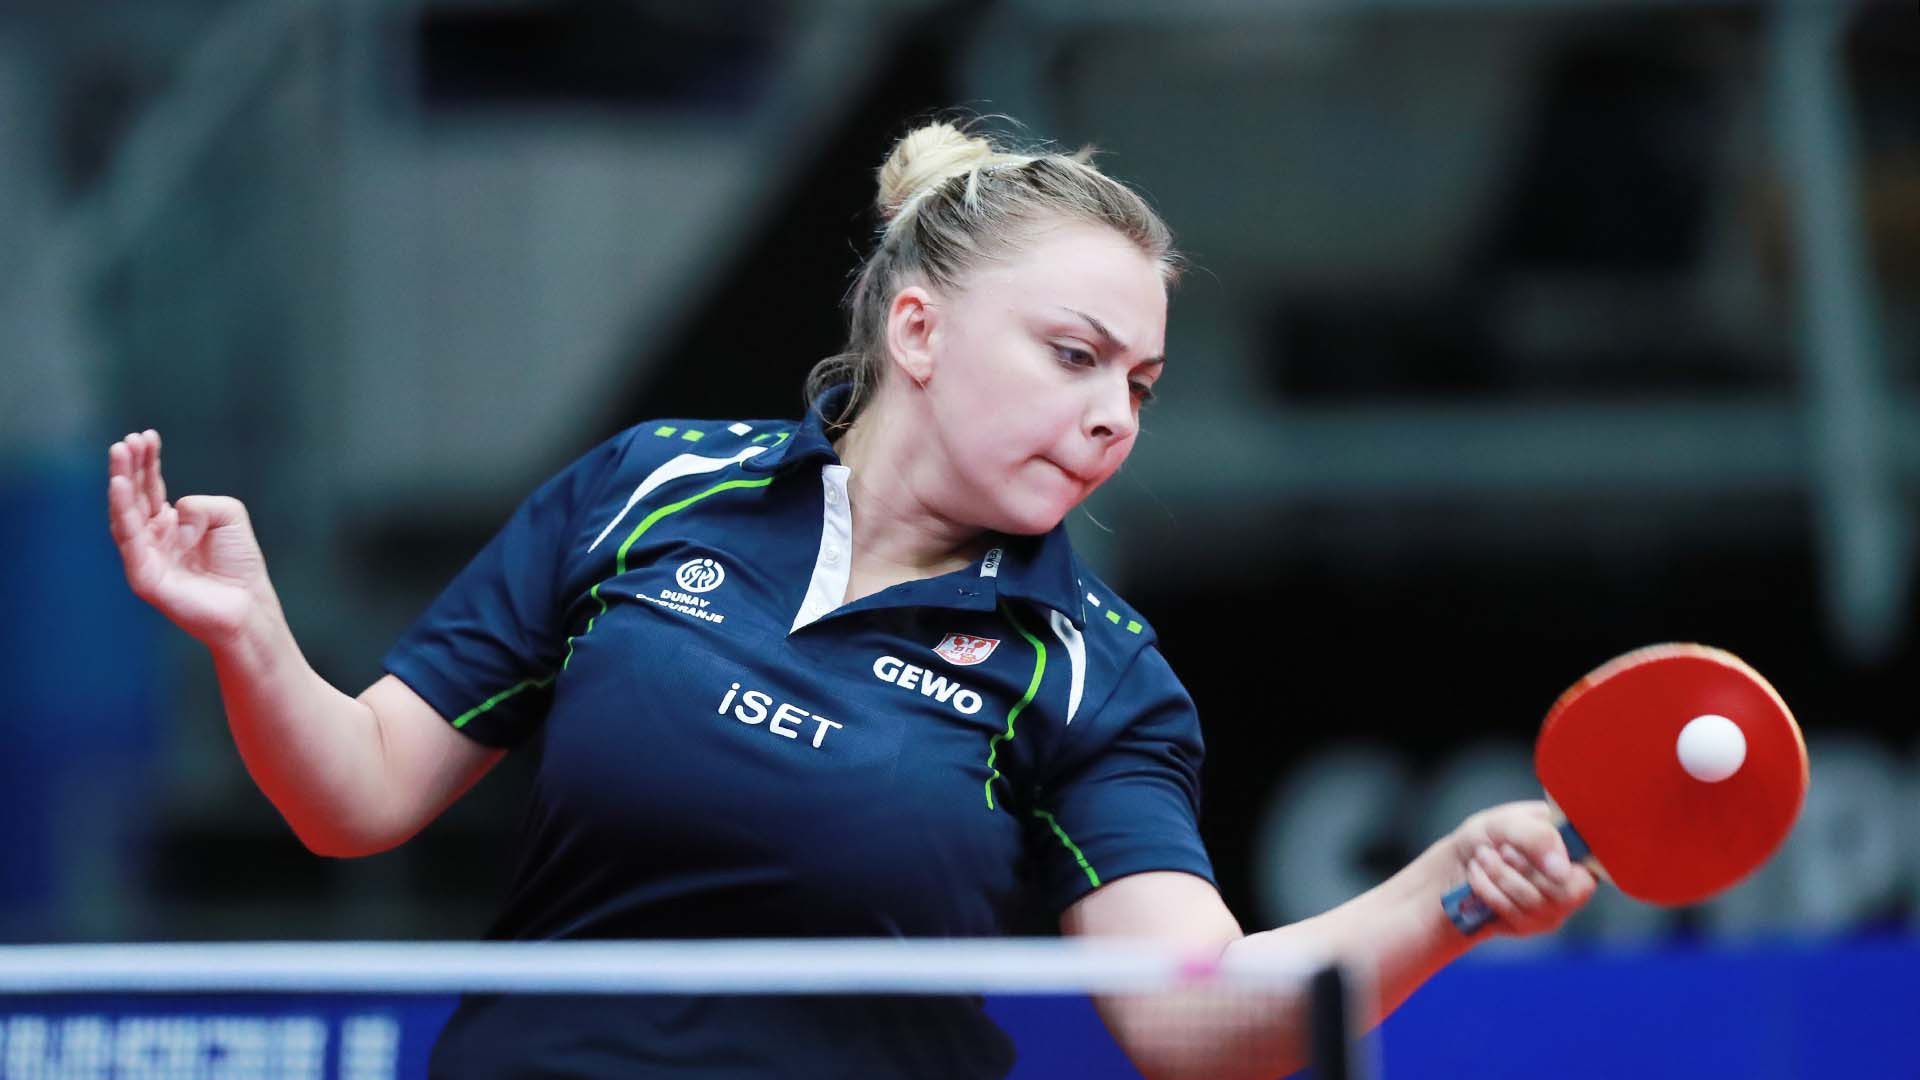 Surjan causes upset in preparation for Youth Olympics at European Table Tennis Championships